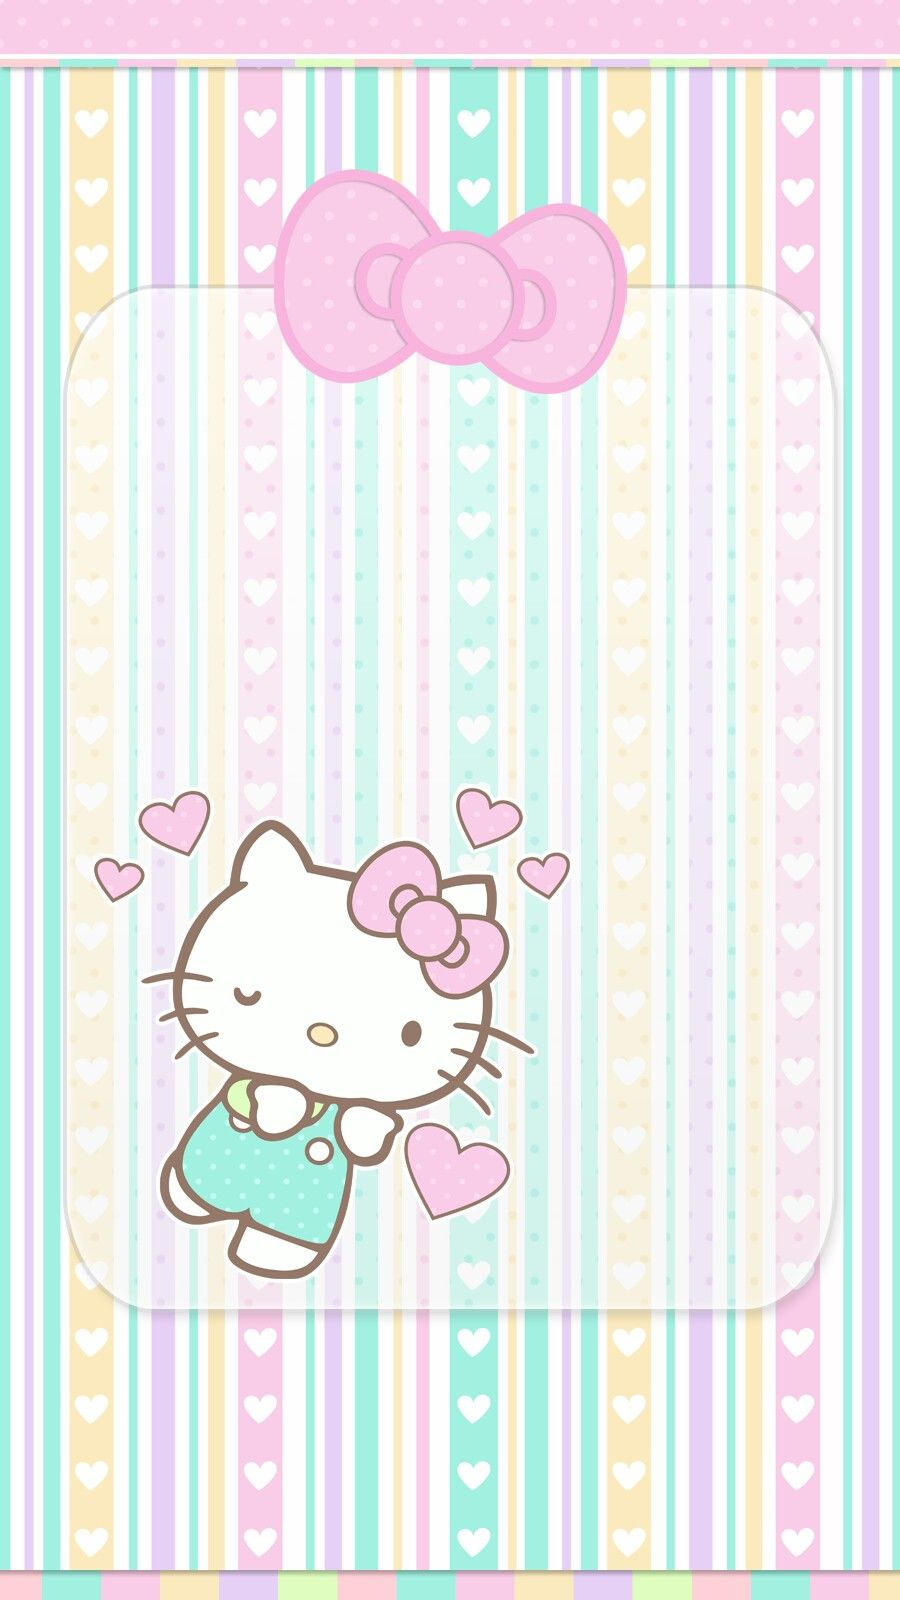 Amazing Wallpaper Hello Kitty Pastel - c92883d7271cfd4f9daebcc38bea1582  Perfect Image Reference_85653.jpg